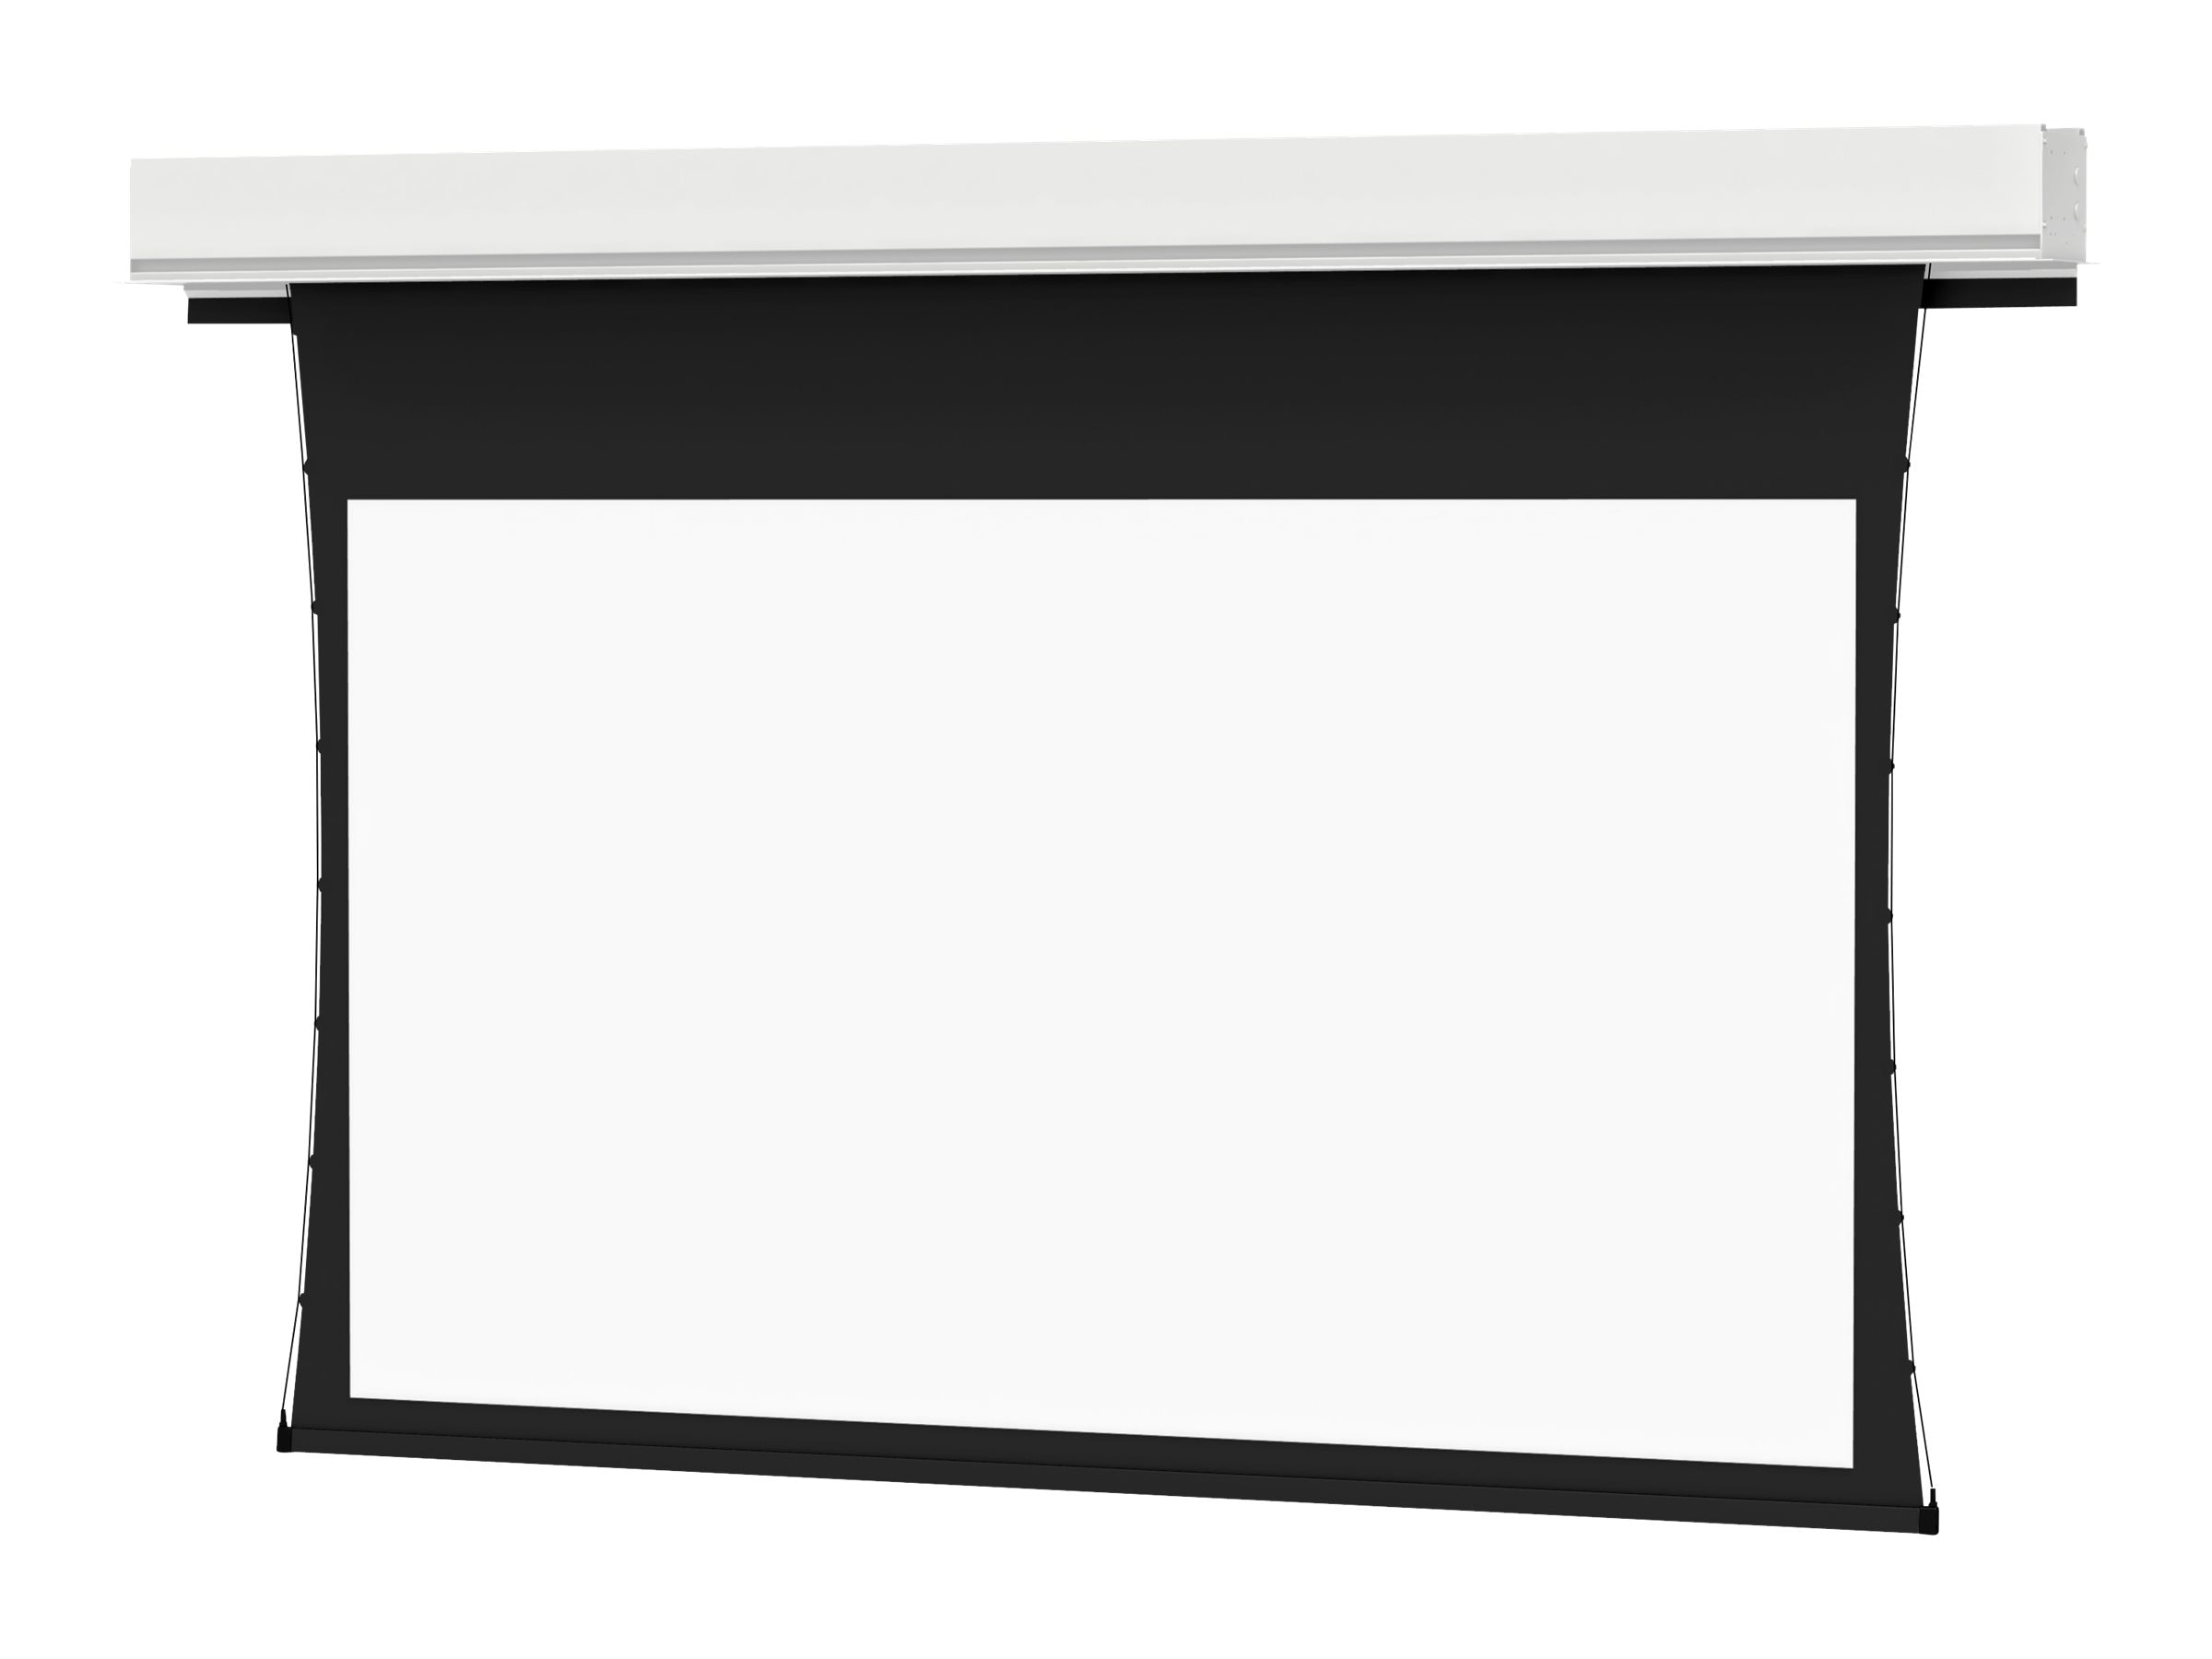 Da-Lite Tensioned Advantage Deluxe Electrol Projection Screen, 16:10, 123, 24859, 24171584, Projector Screens